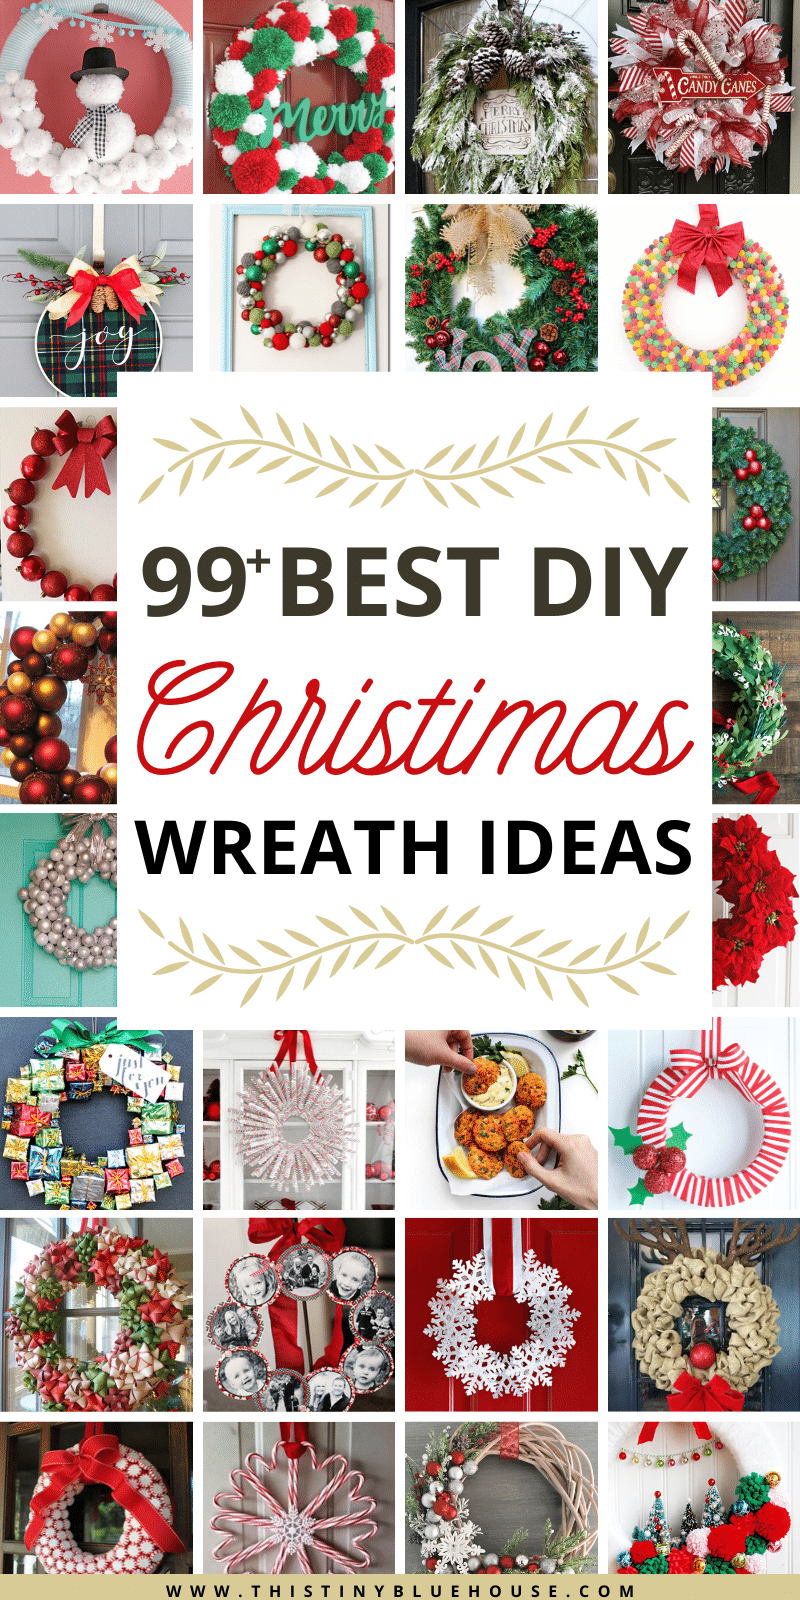 100 Best Cheap Diy Christmas Wreaths This Tiny Blue House